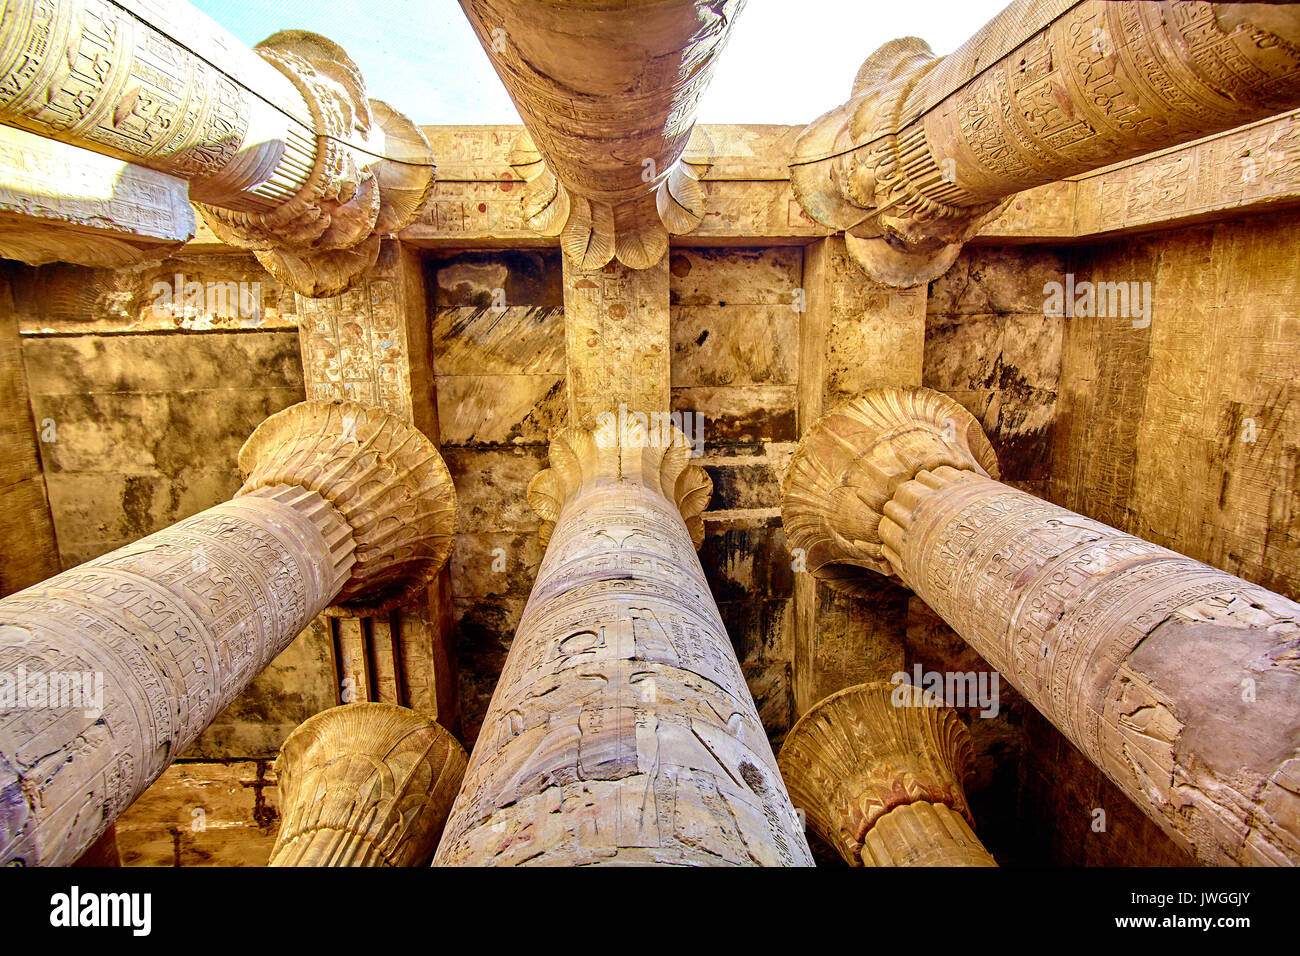 columns of the hypostyle hall of Karnak's temple in Luxor, Egypt - Stock Image